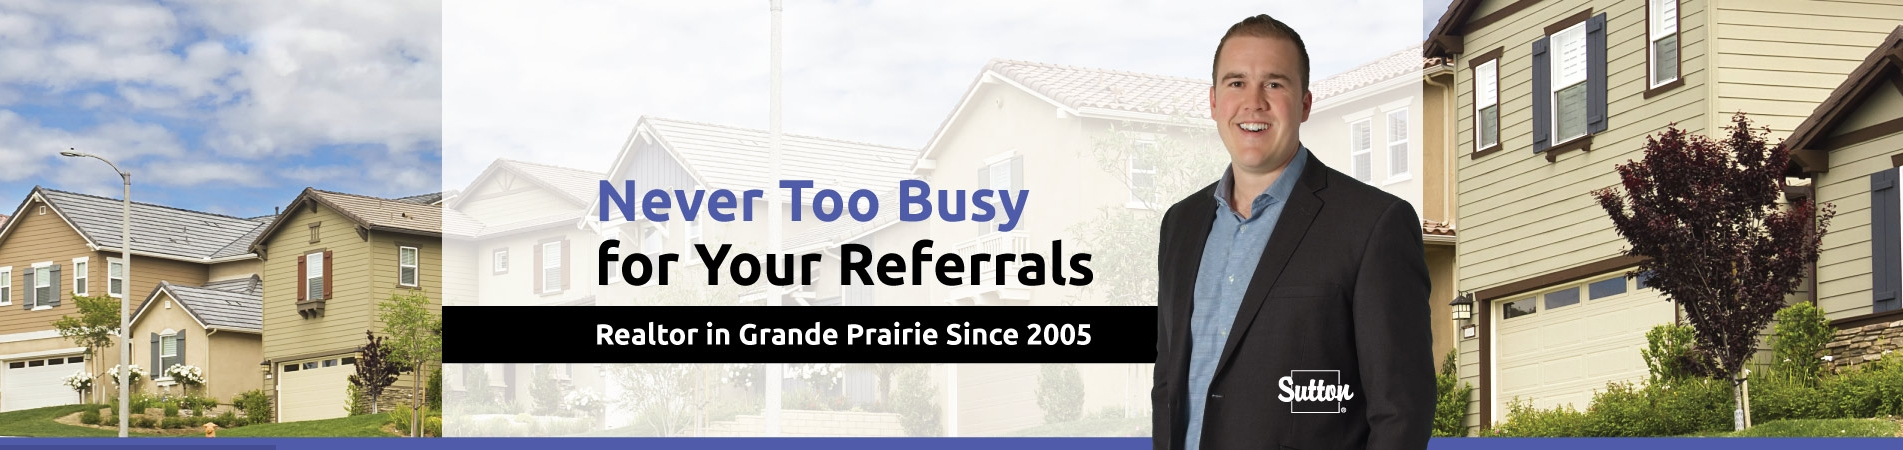 Never Too Busy For Your Referrals